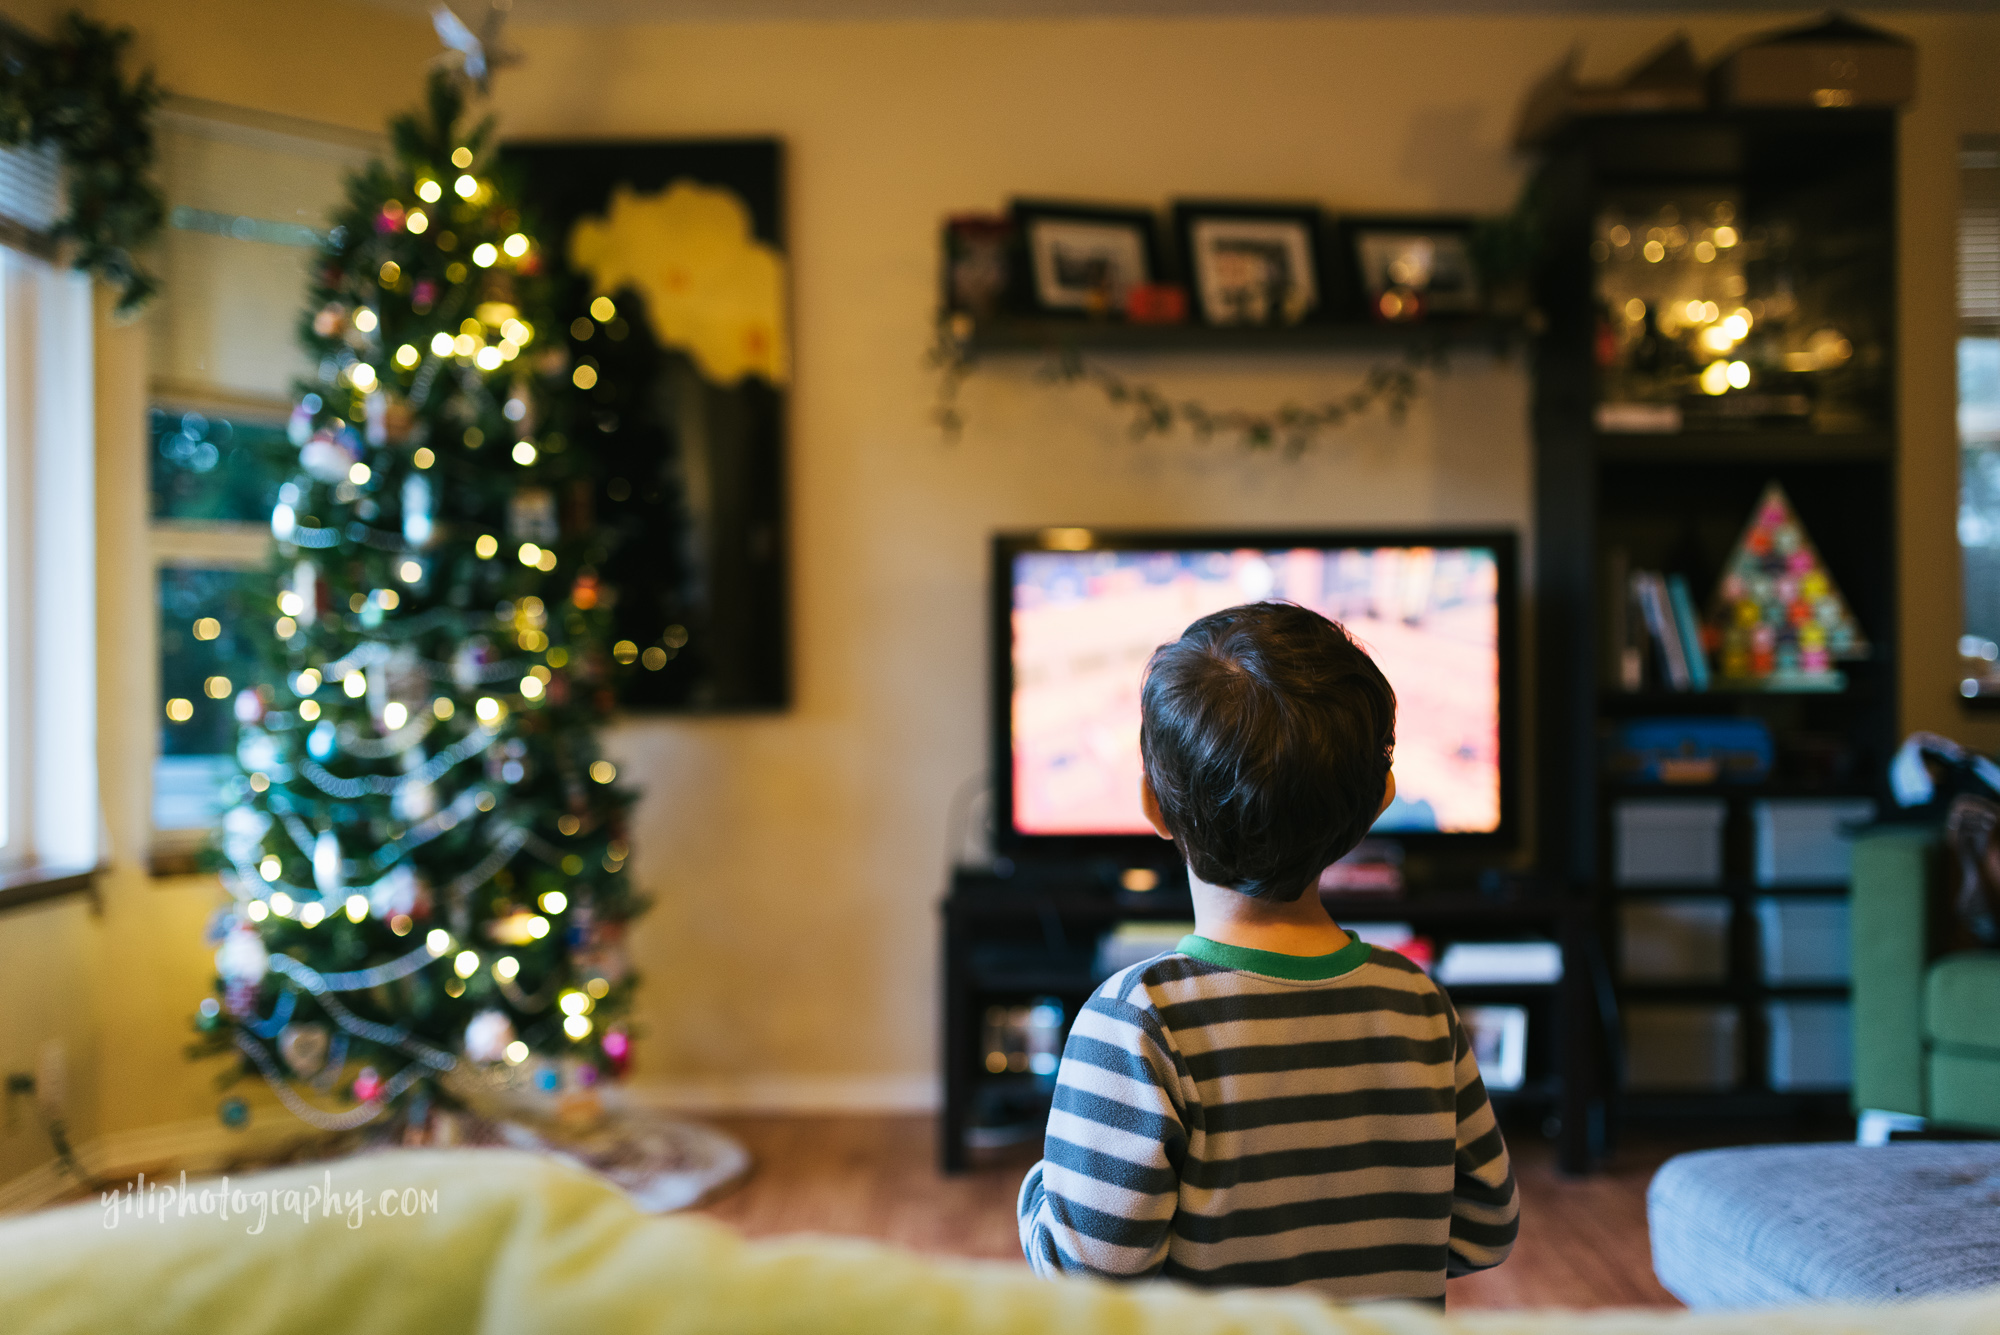 Seattle little boy looking at video game on television